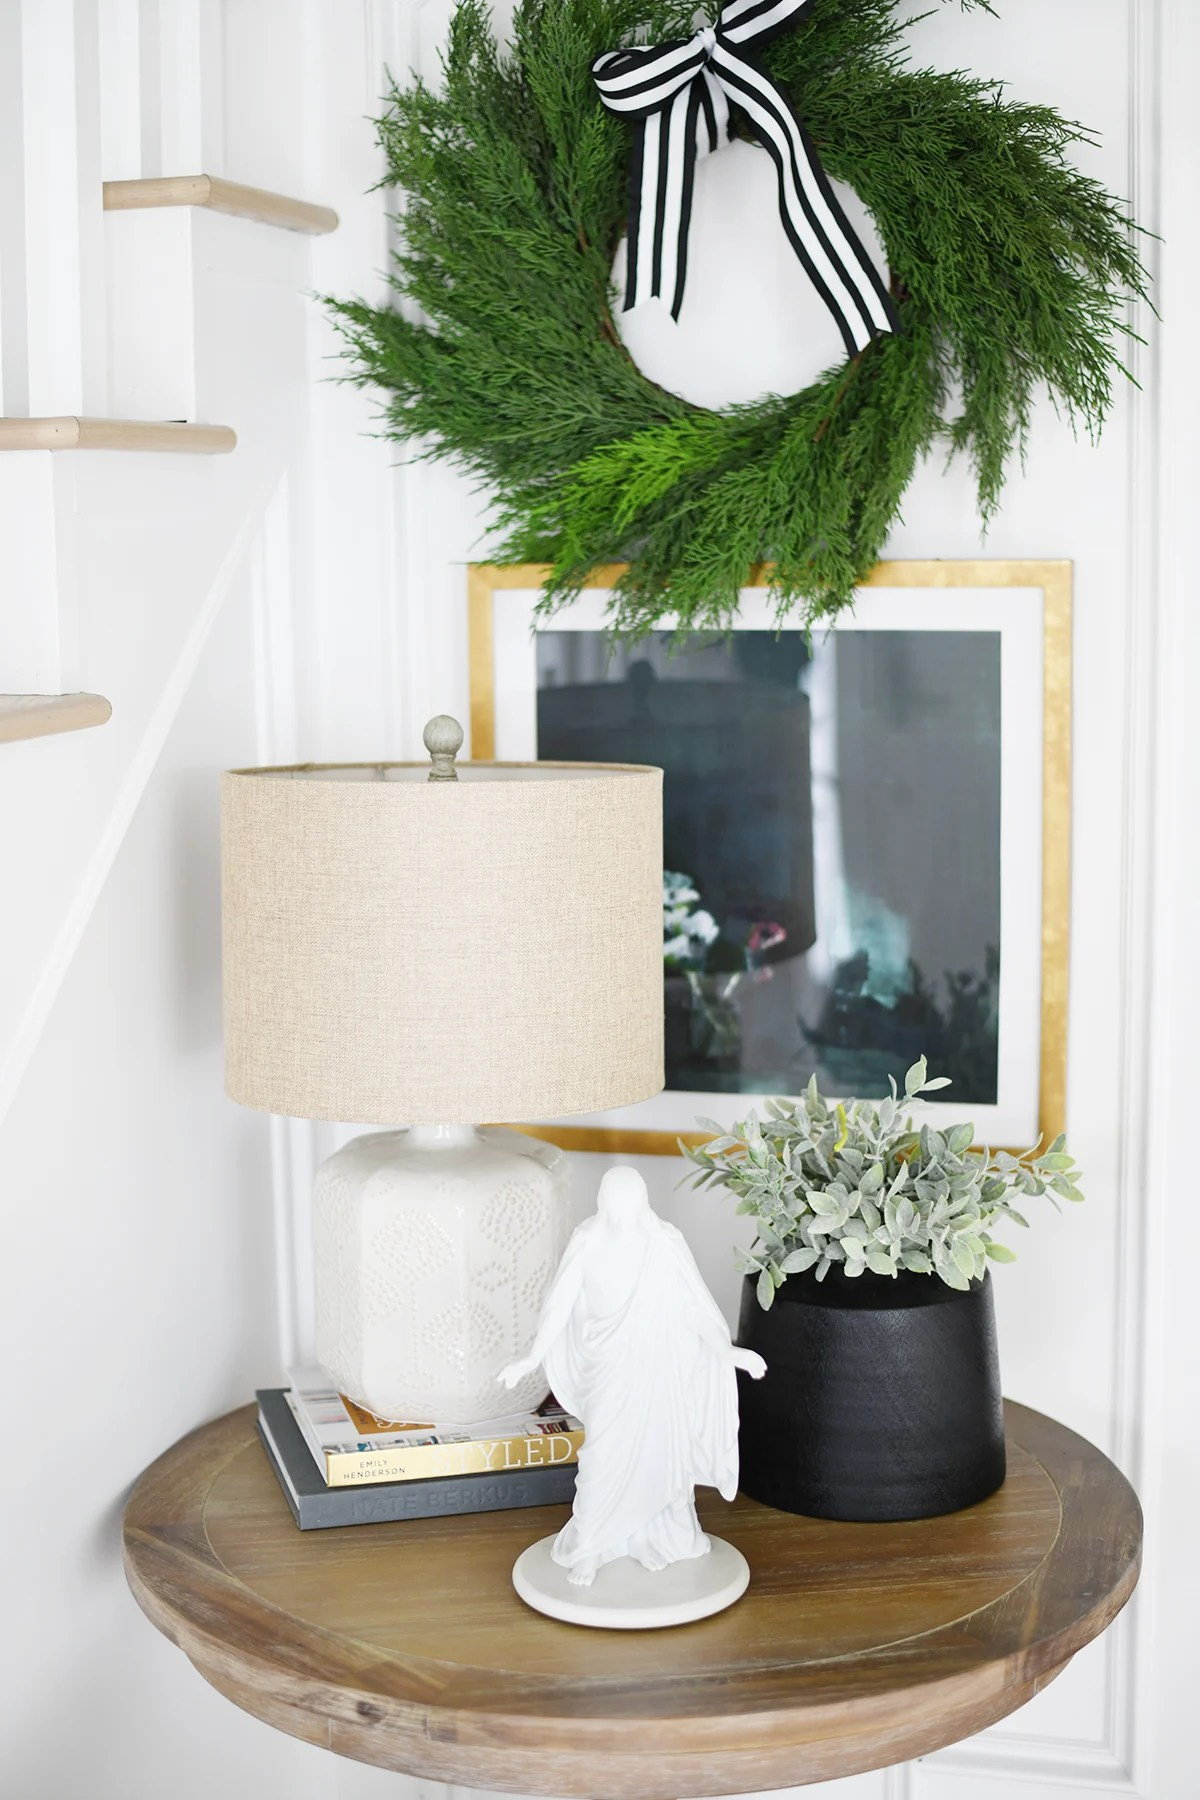 Christmas entry way decor 2